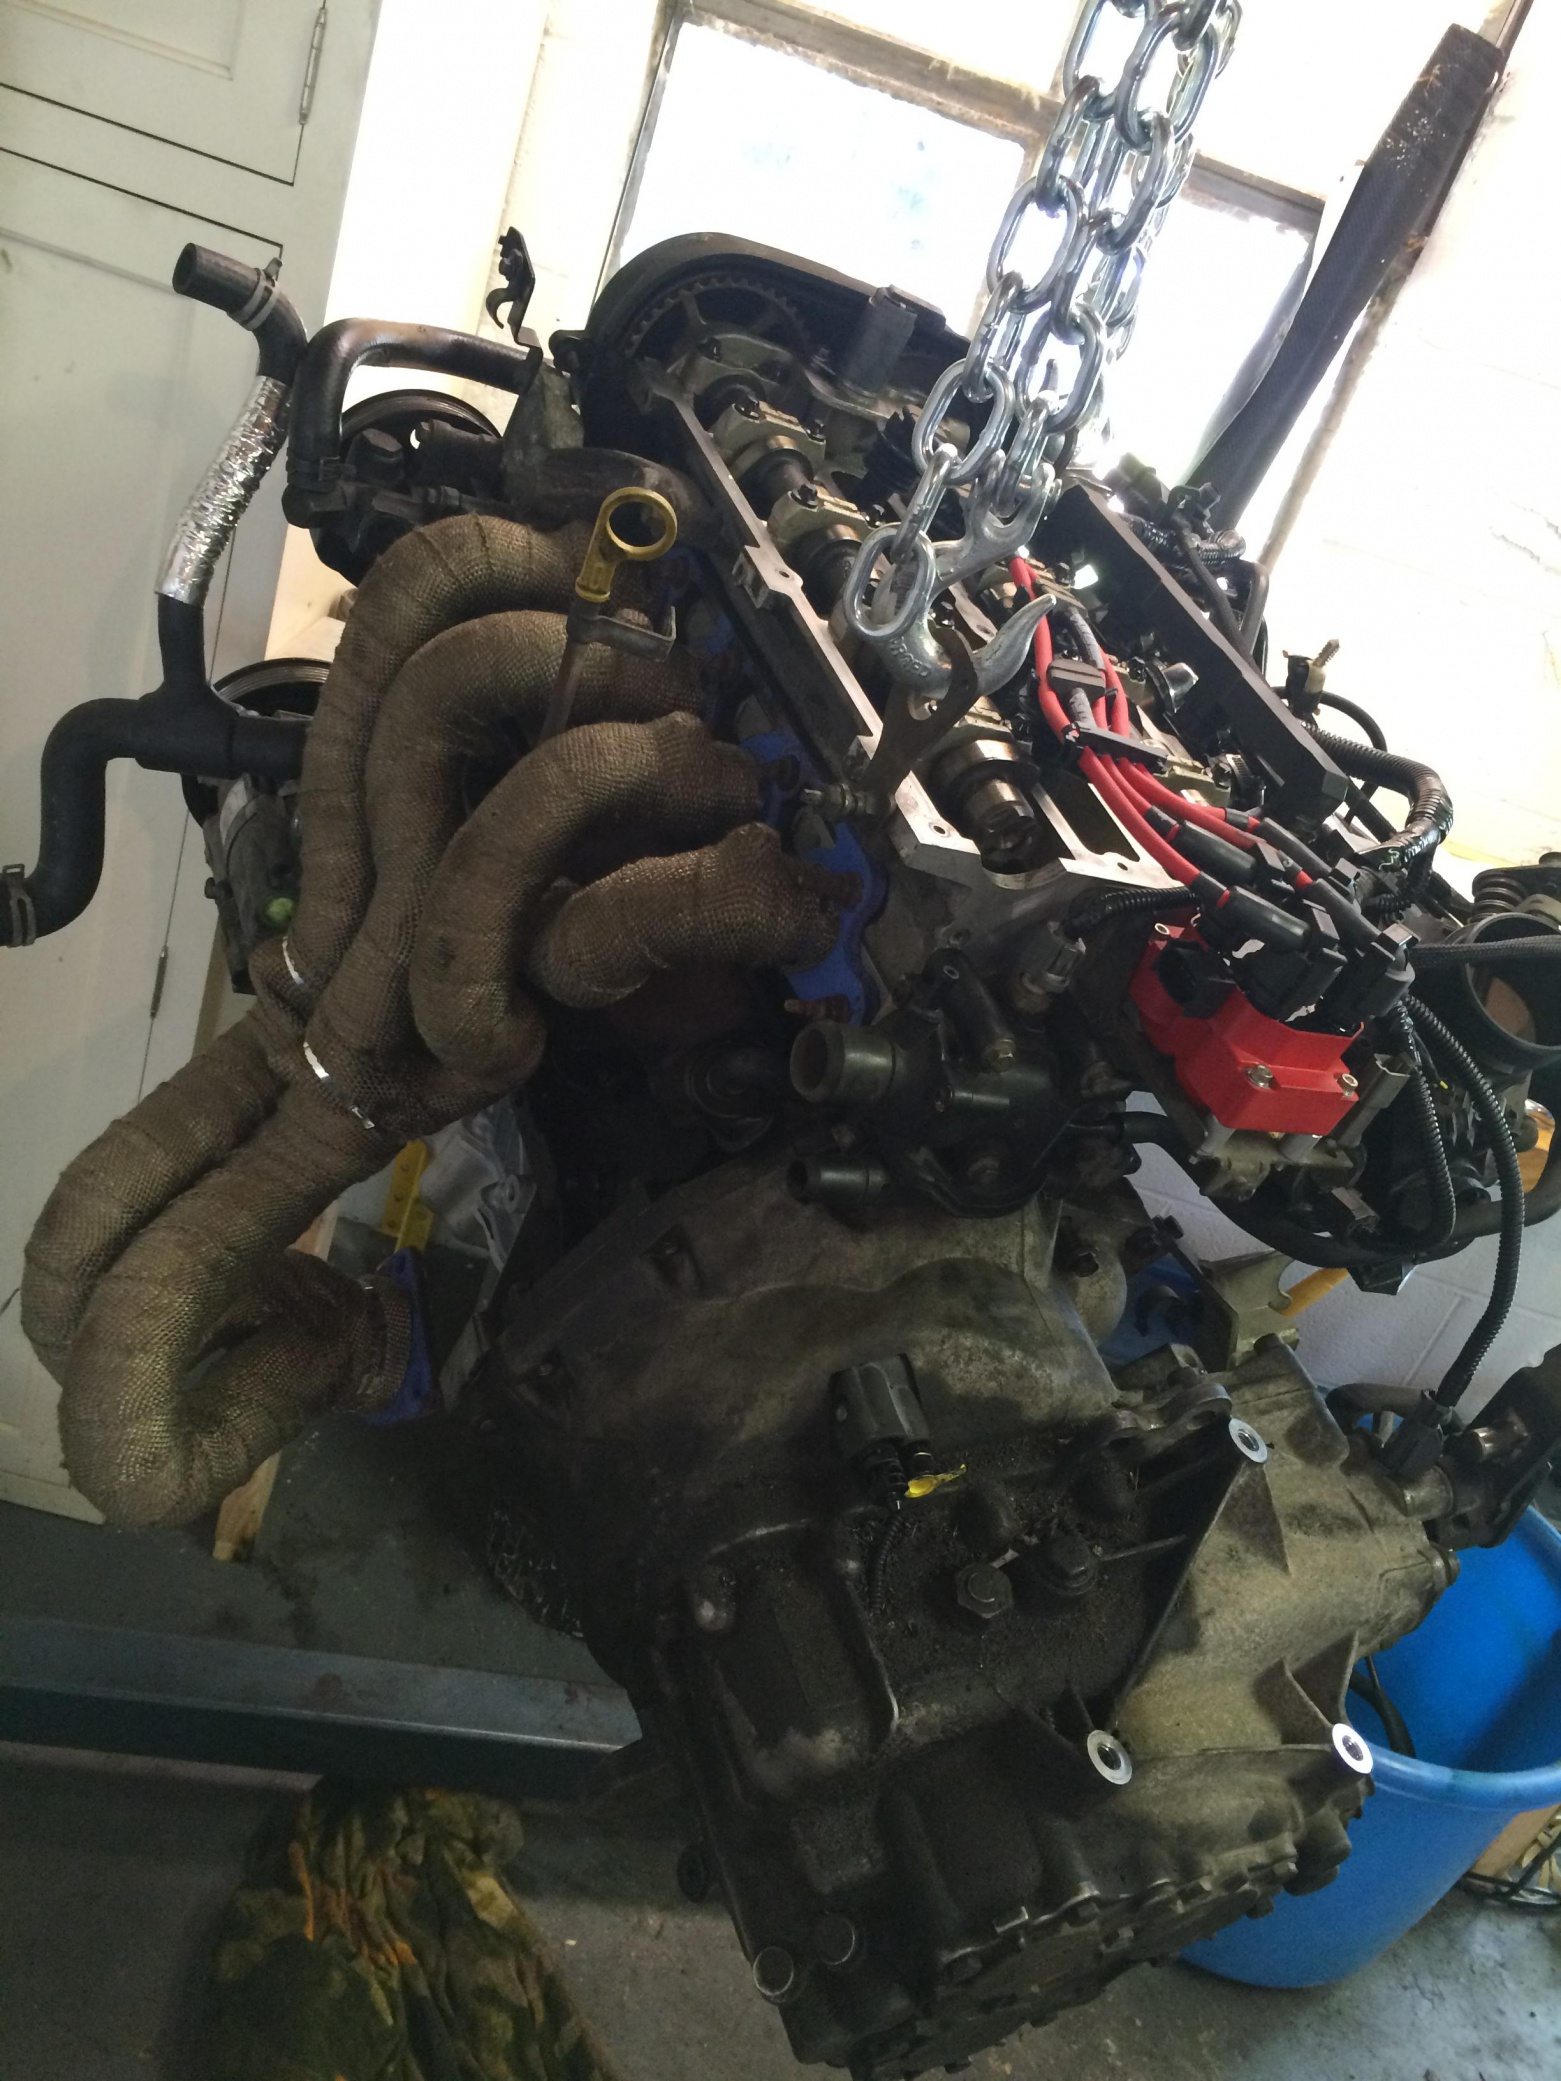 Svt rebuild and forced induction project-img_2519_1485951831865.jpg